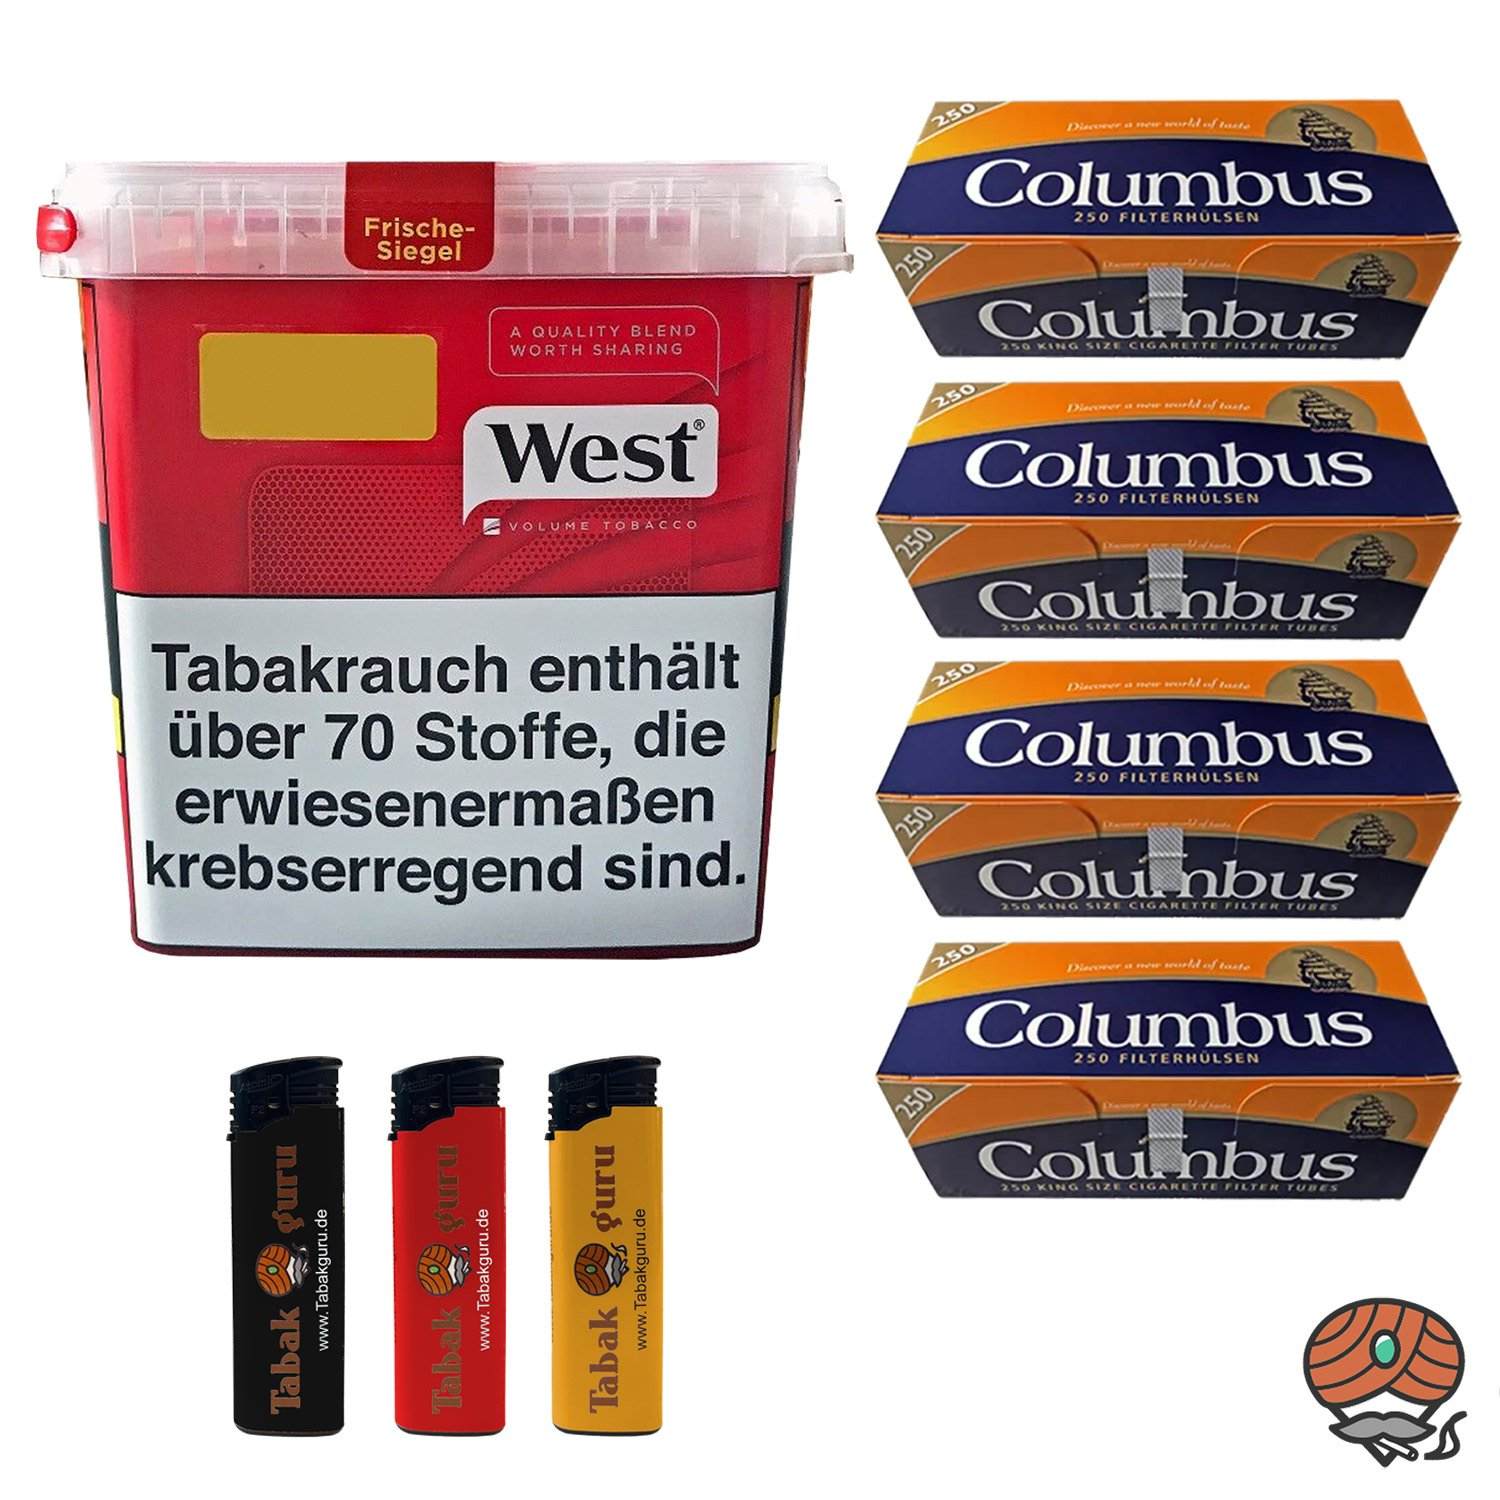 West Red Volumentabak 280 g, 1.000 Columbus Hülsen, Feuerzeuge